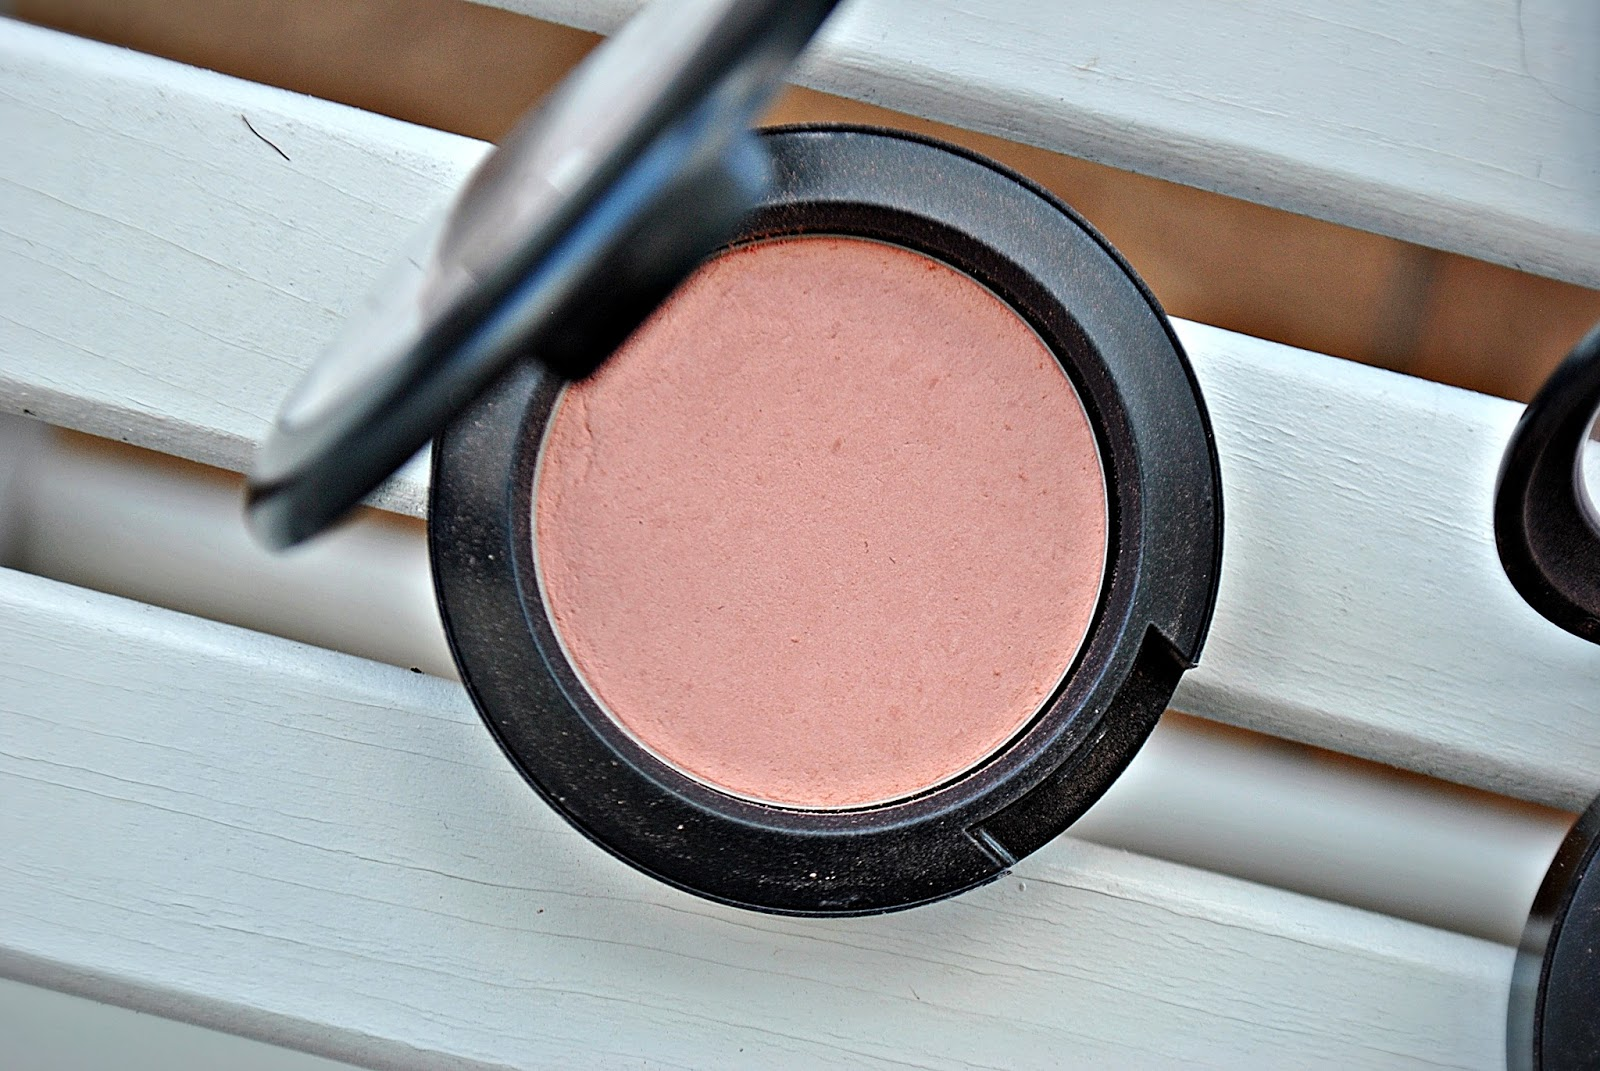 MAC Stay by me - Pro Longwear Blush